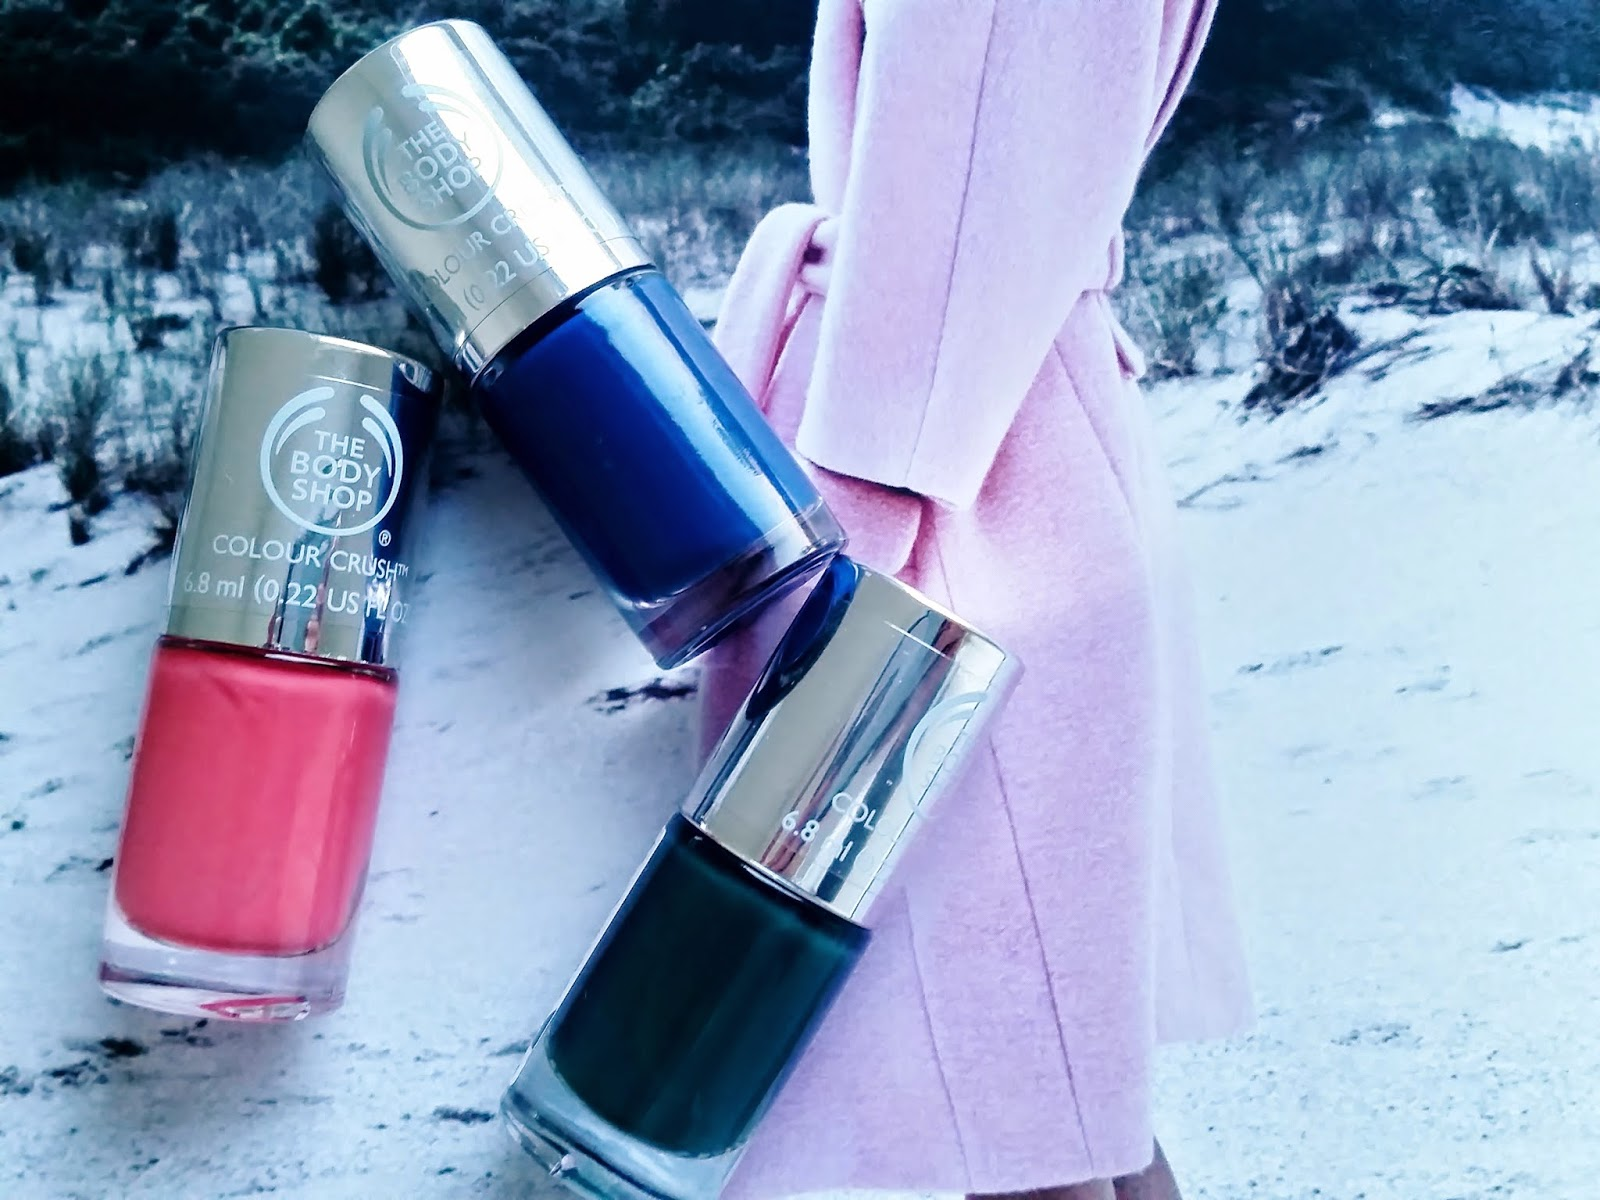 The Body Shop Color Crush Nail Polishes